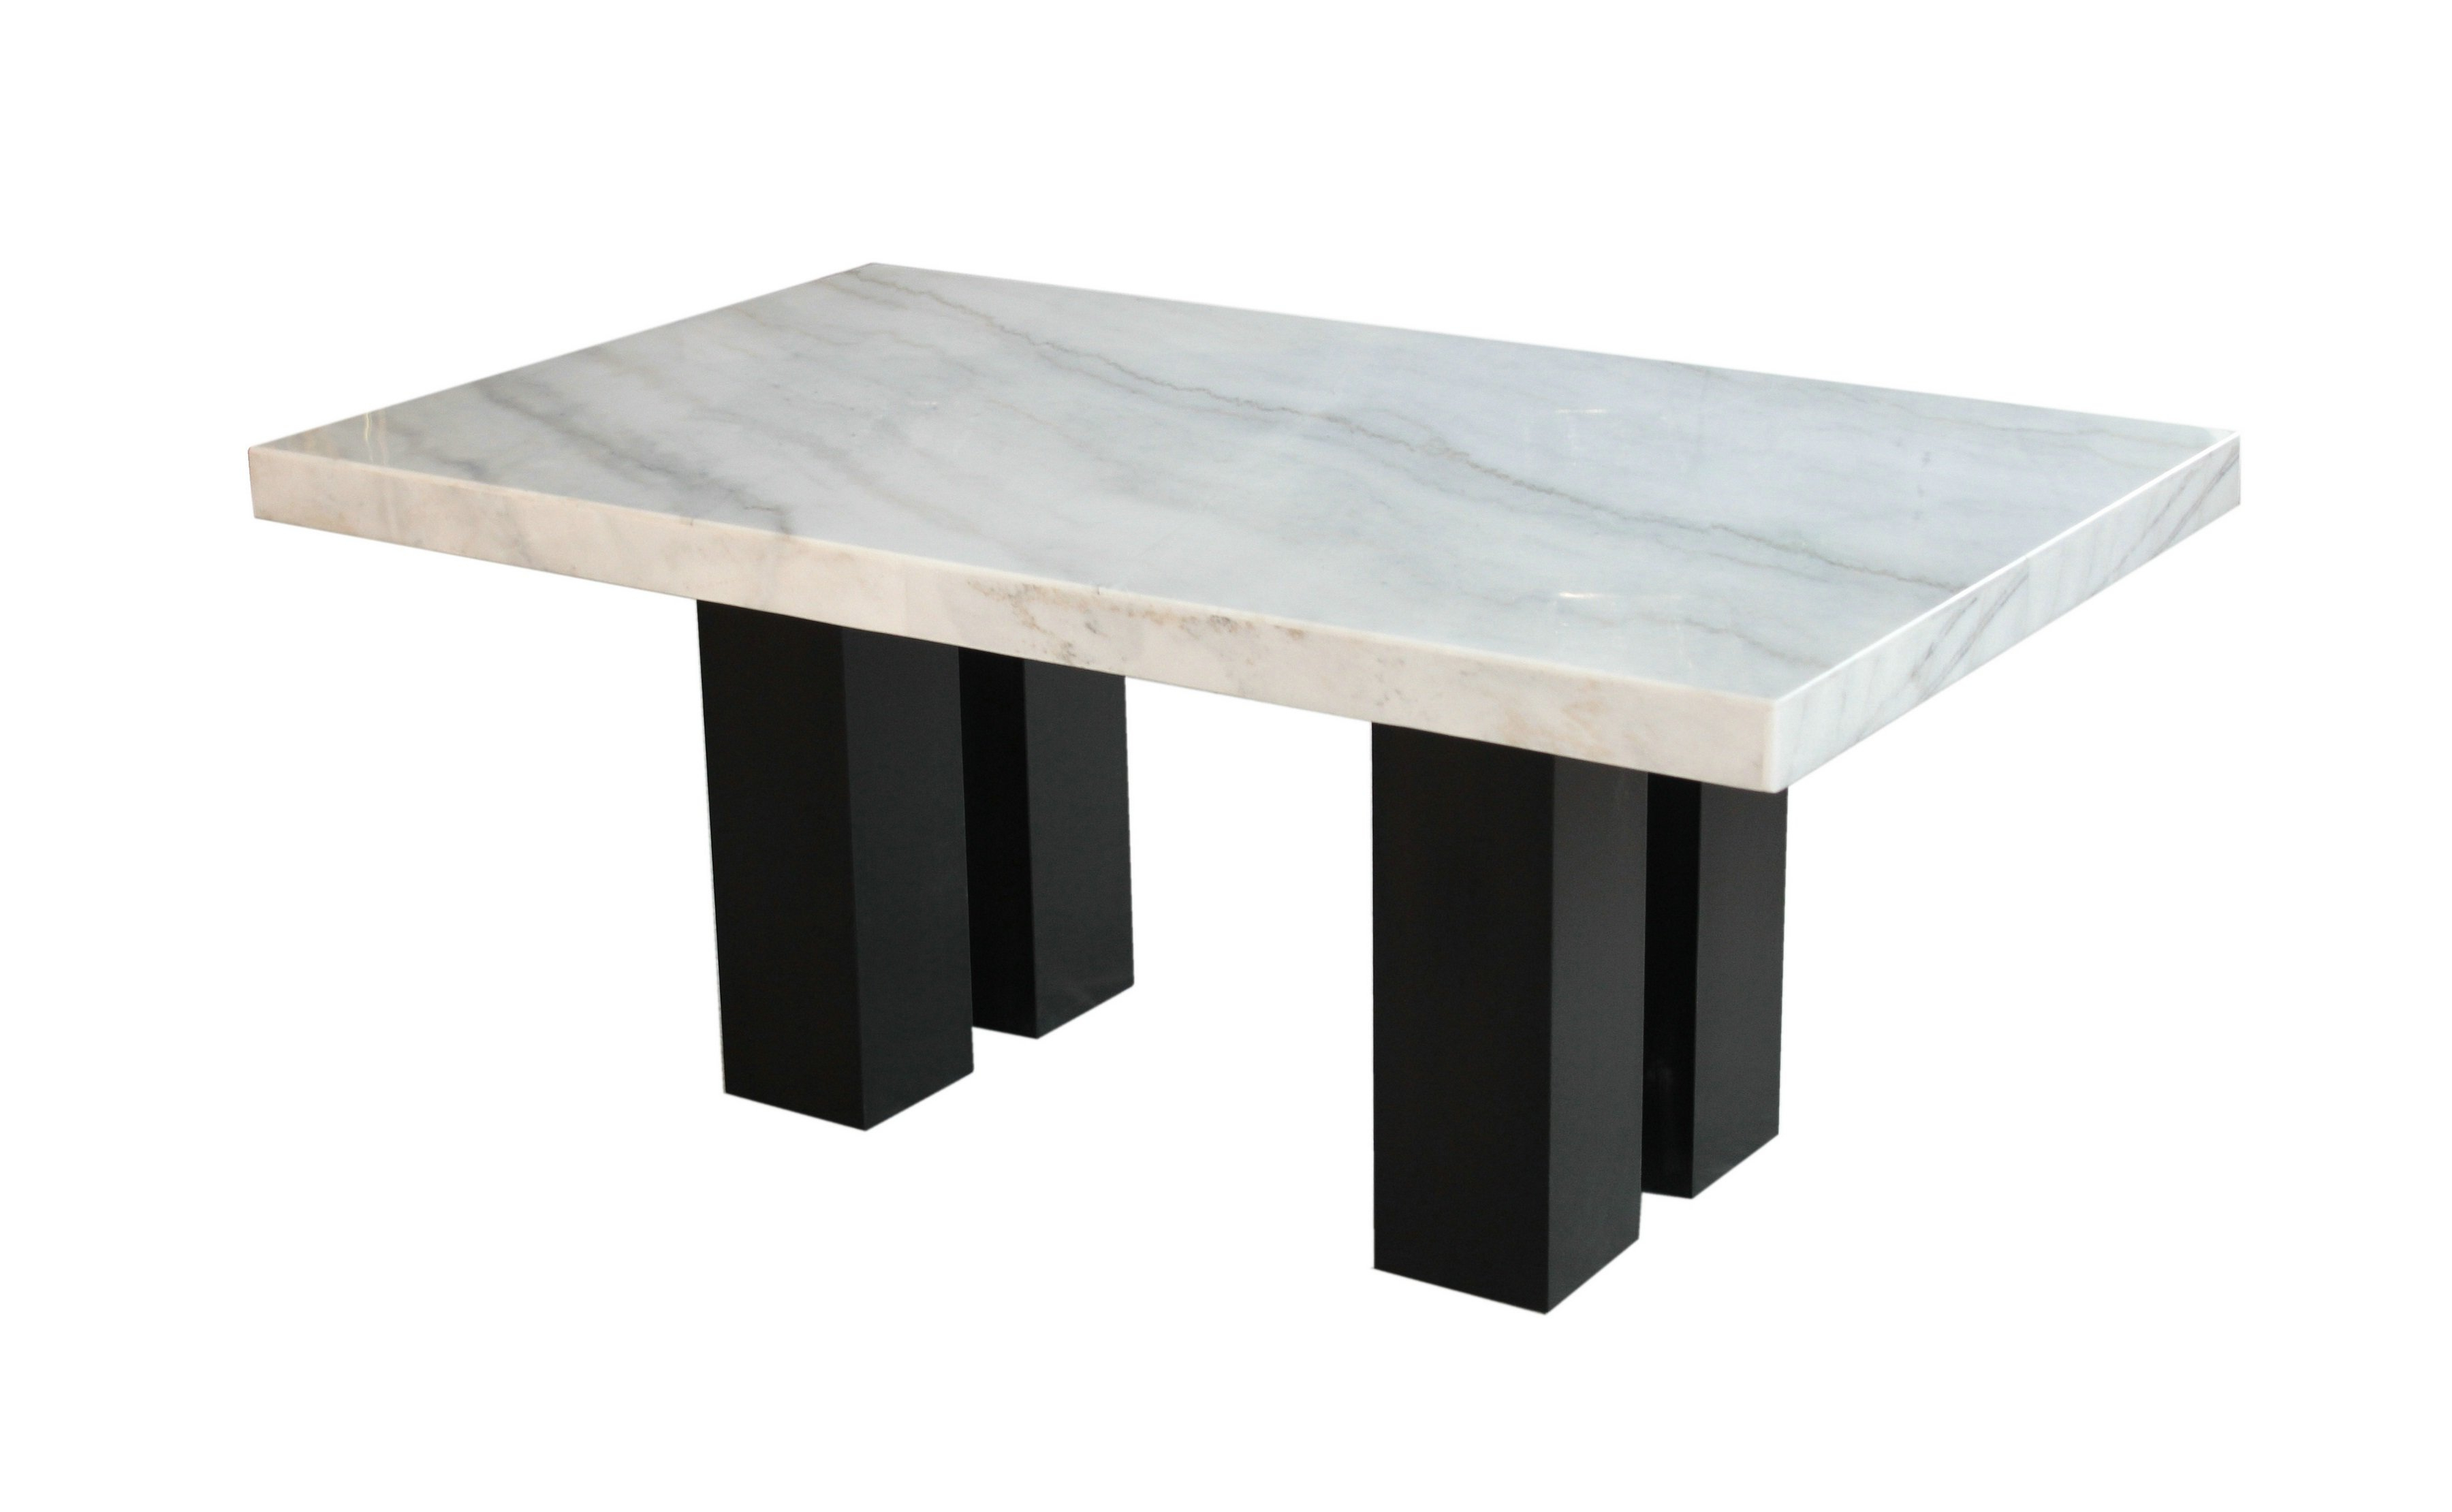 Cassian Dining Table For Fashionable Weatherholt Dining Tables (Gallery 17 of 20)